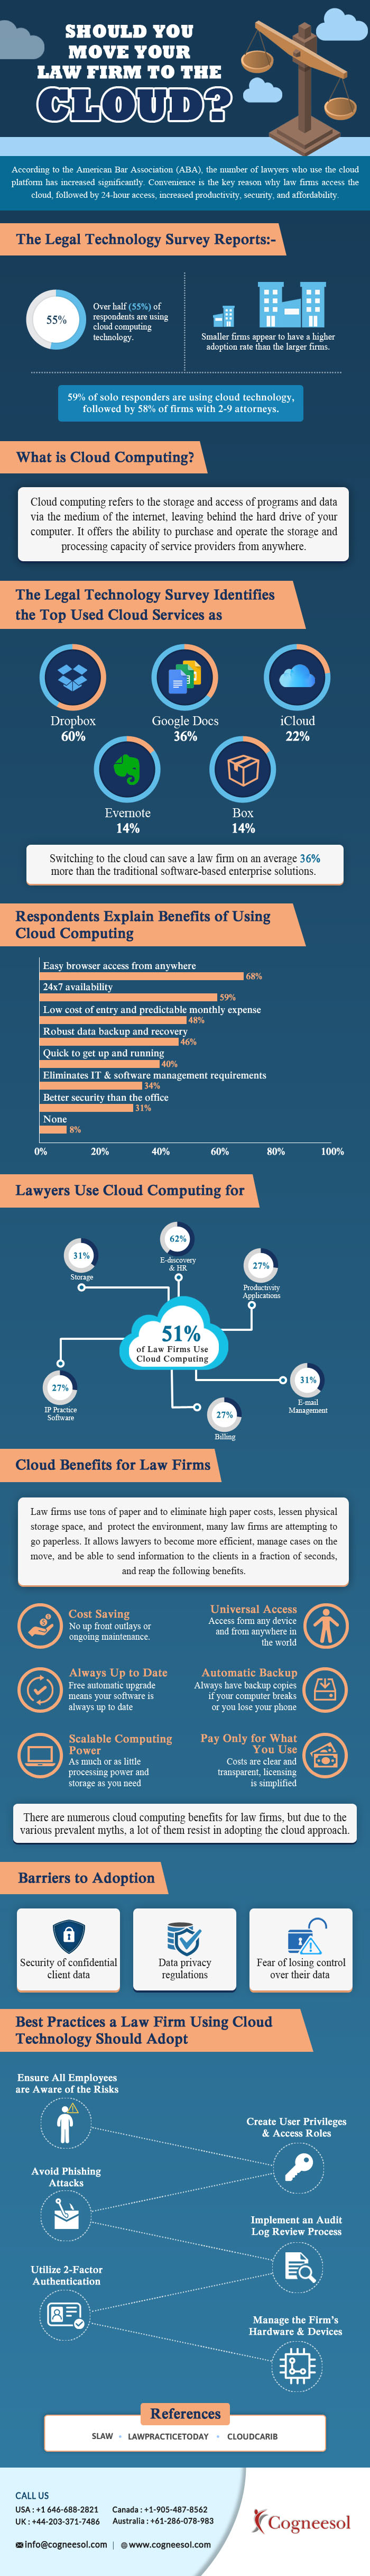 Should You Move Your Law Firm to the Cloud?